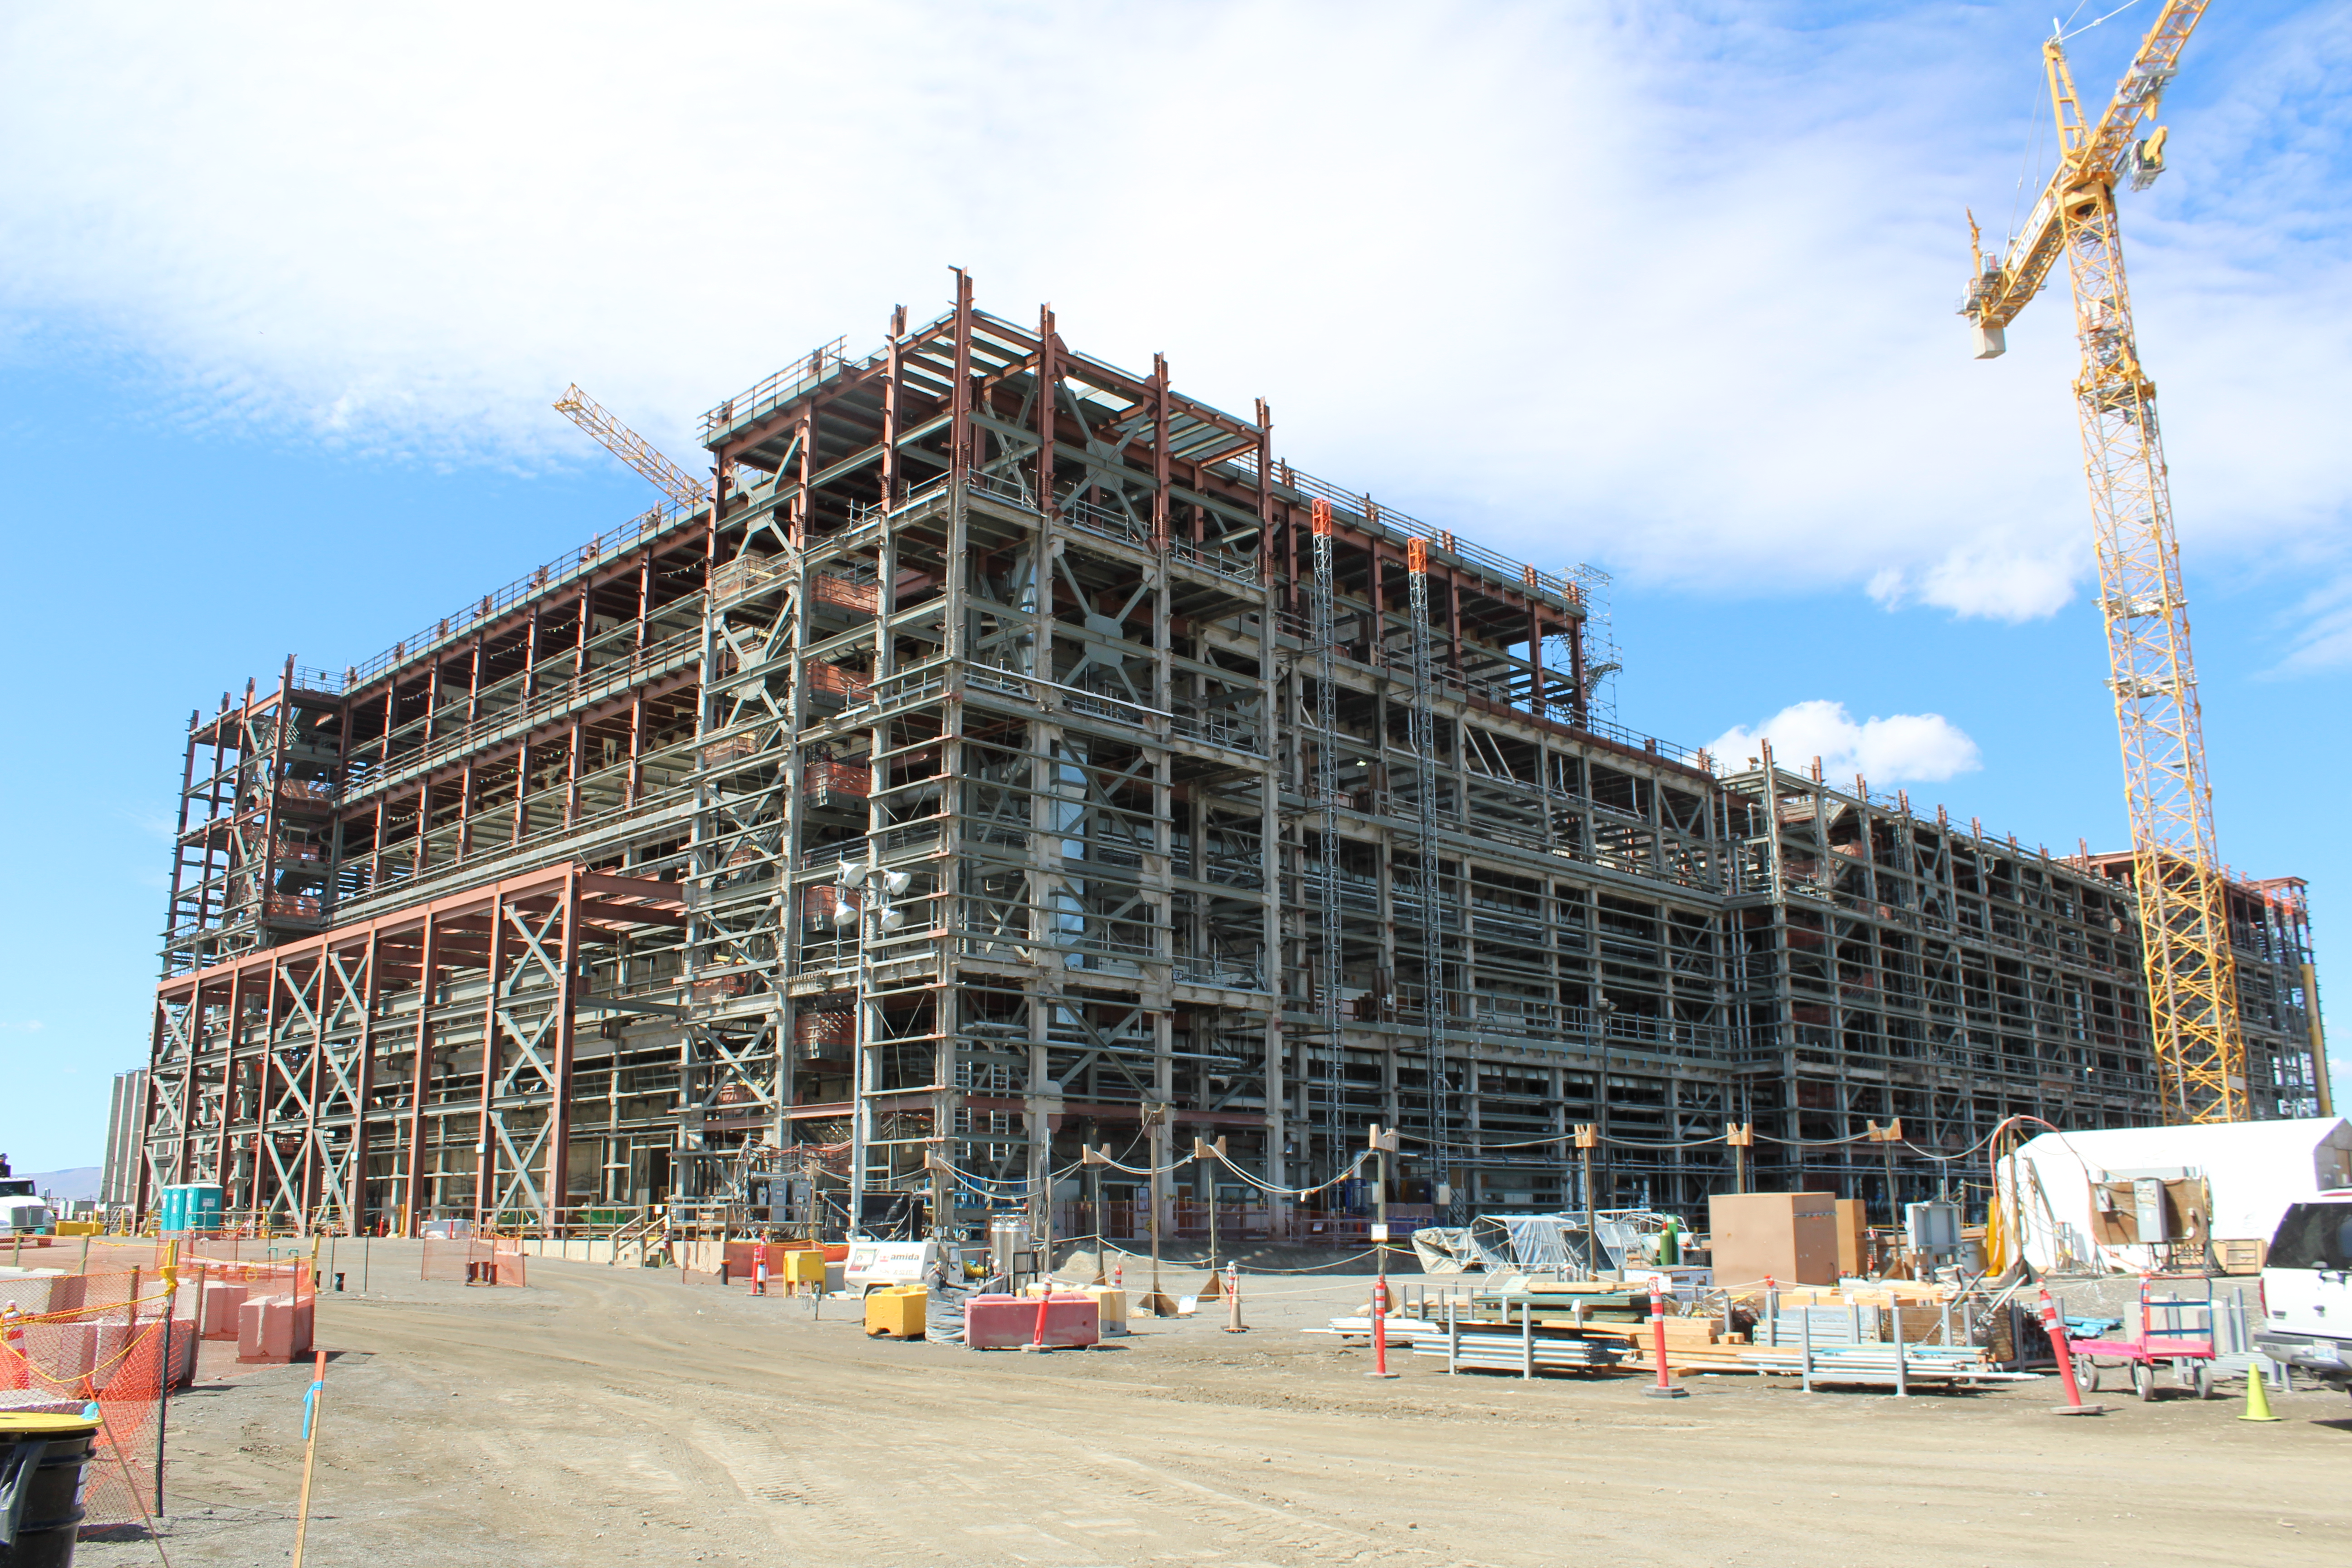 Photo of the Pretreatment Facility at the Waste Treatment Plant. An enormous building still under construction, surrounded by construction equipment, blue sky above.